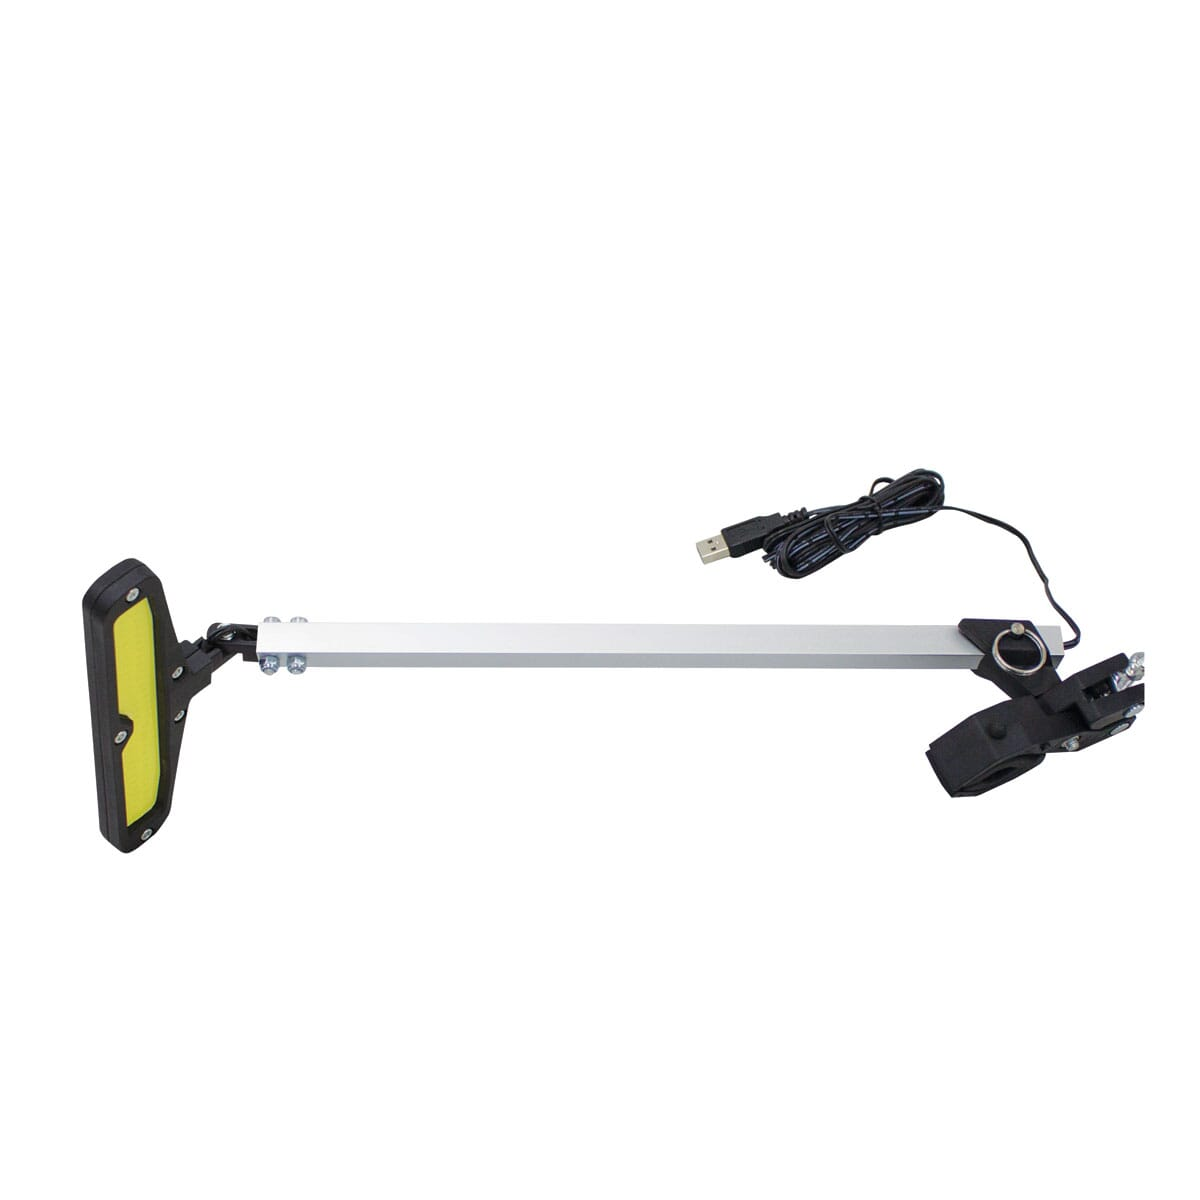 Black and white LED display light with long arm